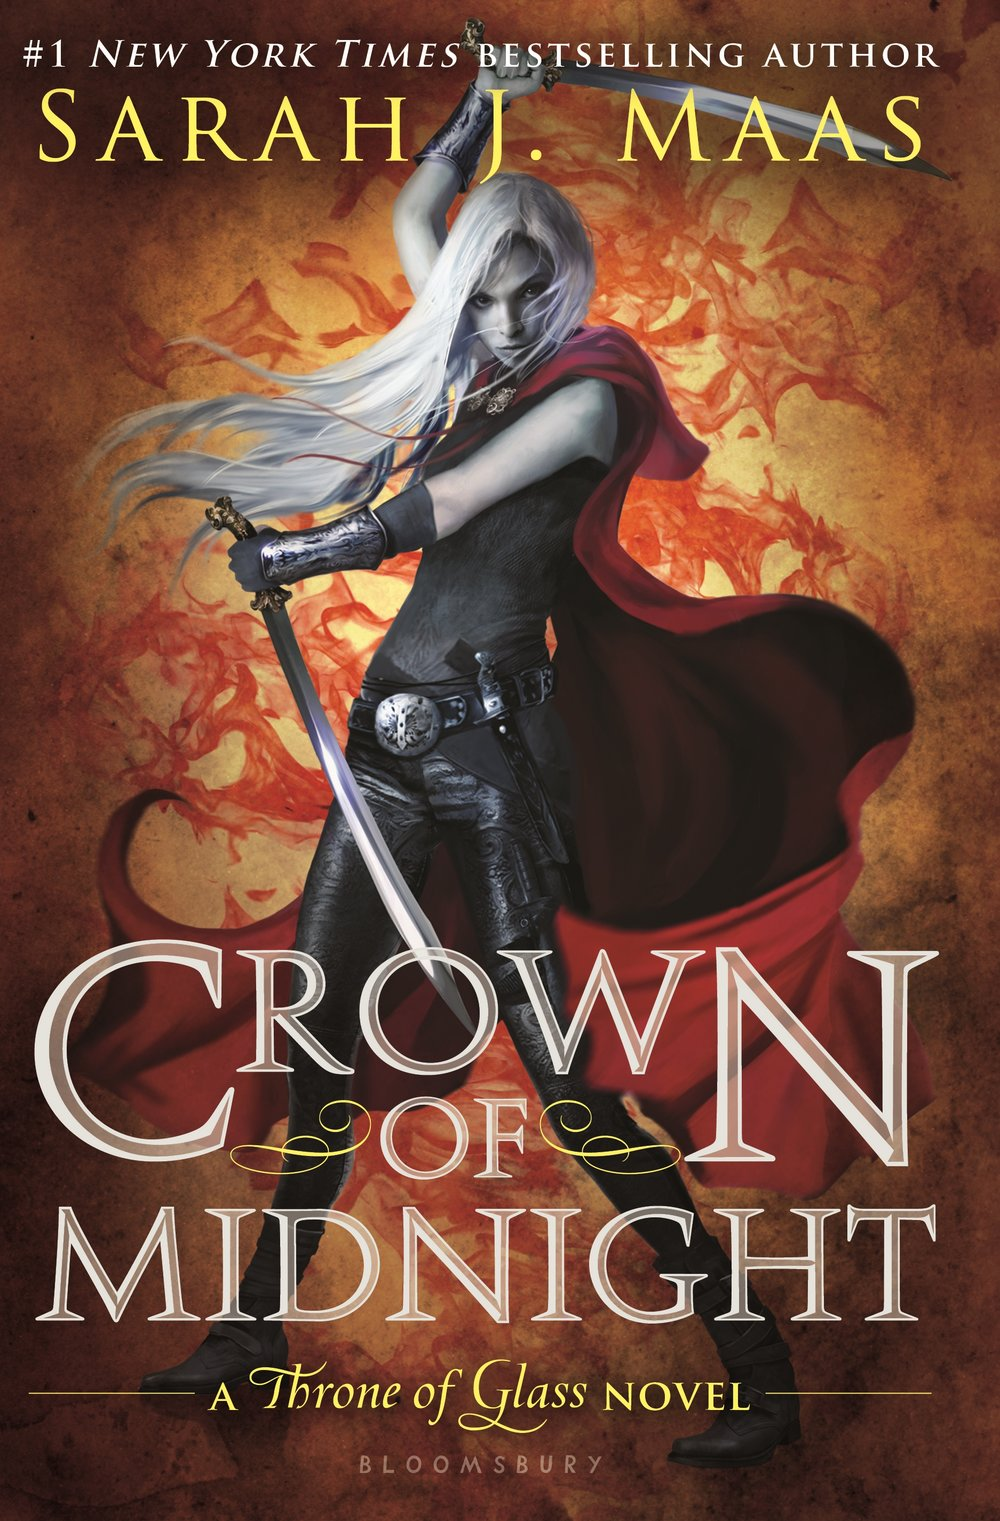 crown of midnight by sarah j maas.jpeg